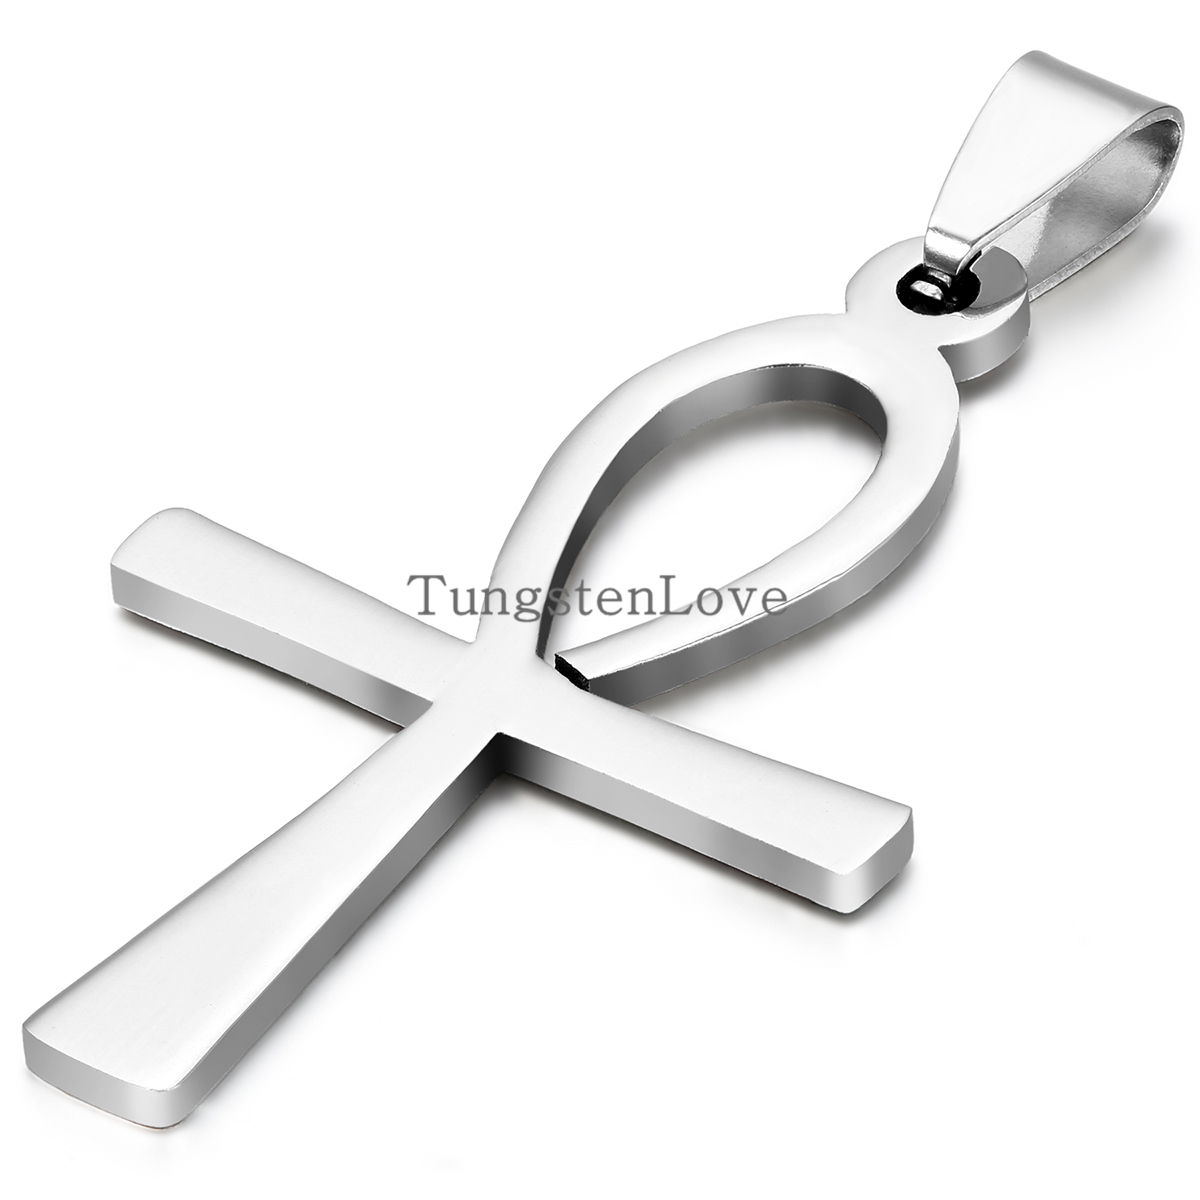 Hot 2015 Men Jewelry Silver 316L Stainless Steel Stainless Steel Egyptian Ankh Cross Mens Womens Pendant Necklaces collares(China (Mainland))